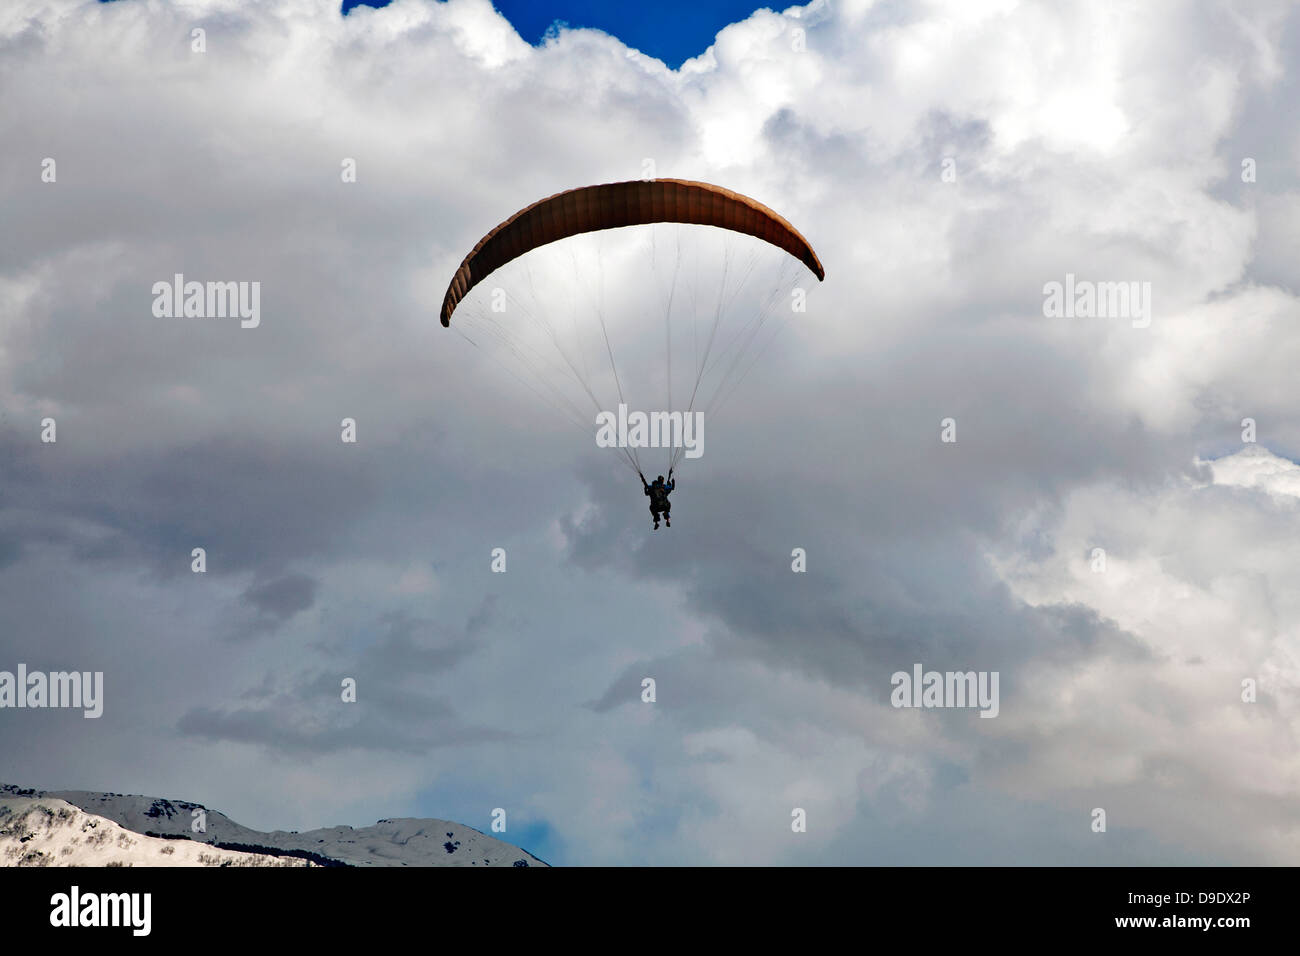 Paragliding in the sky, Manali, Himachal Pradesh, India - Stock Image